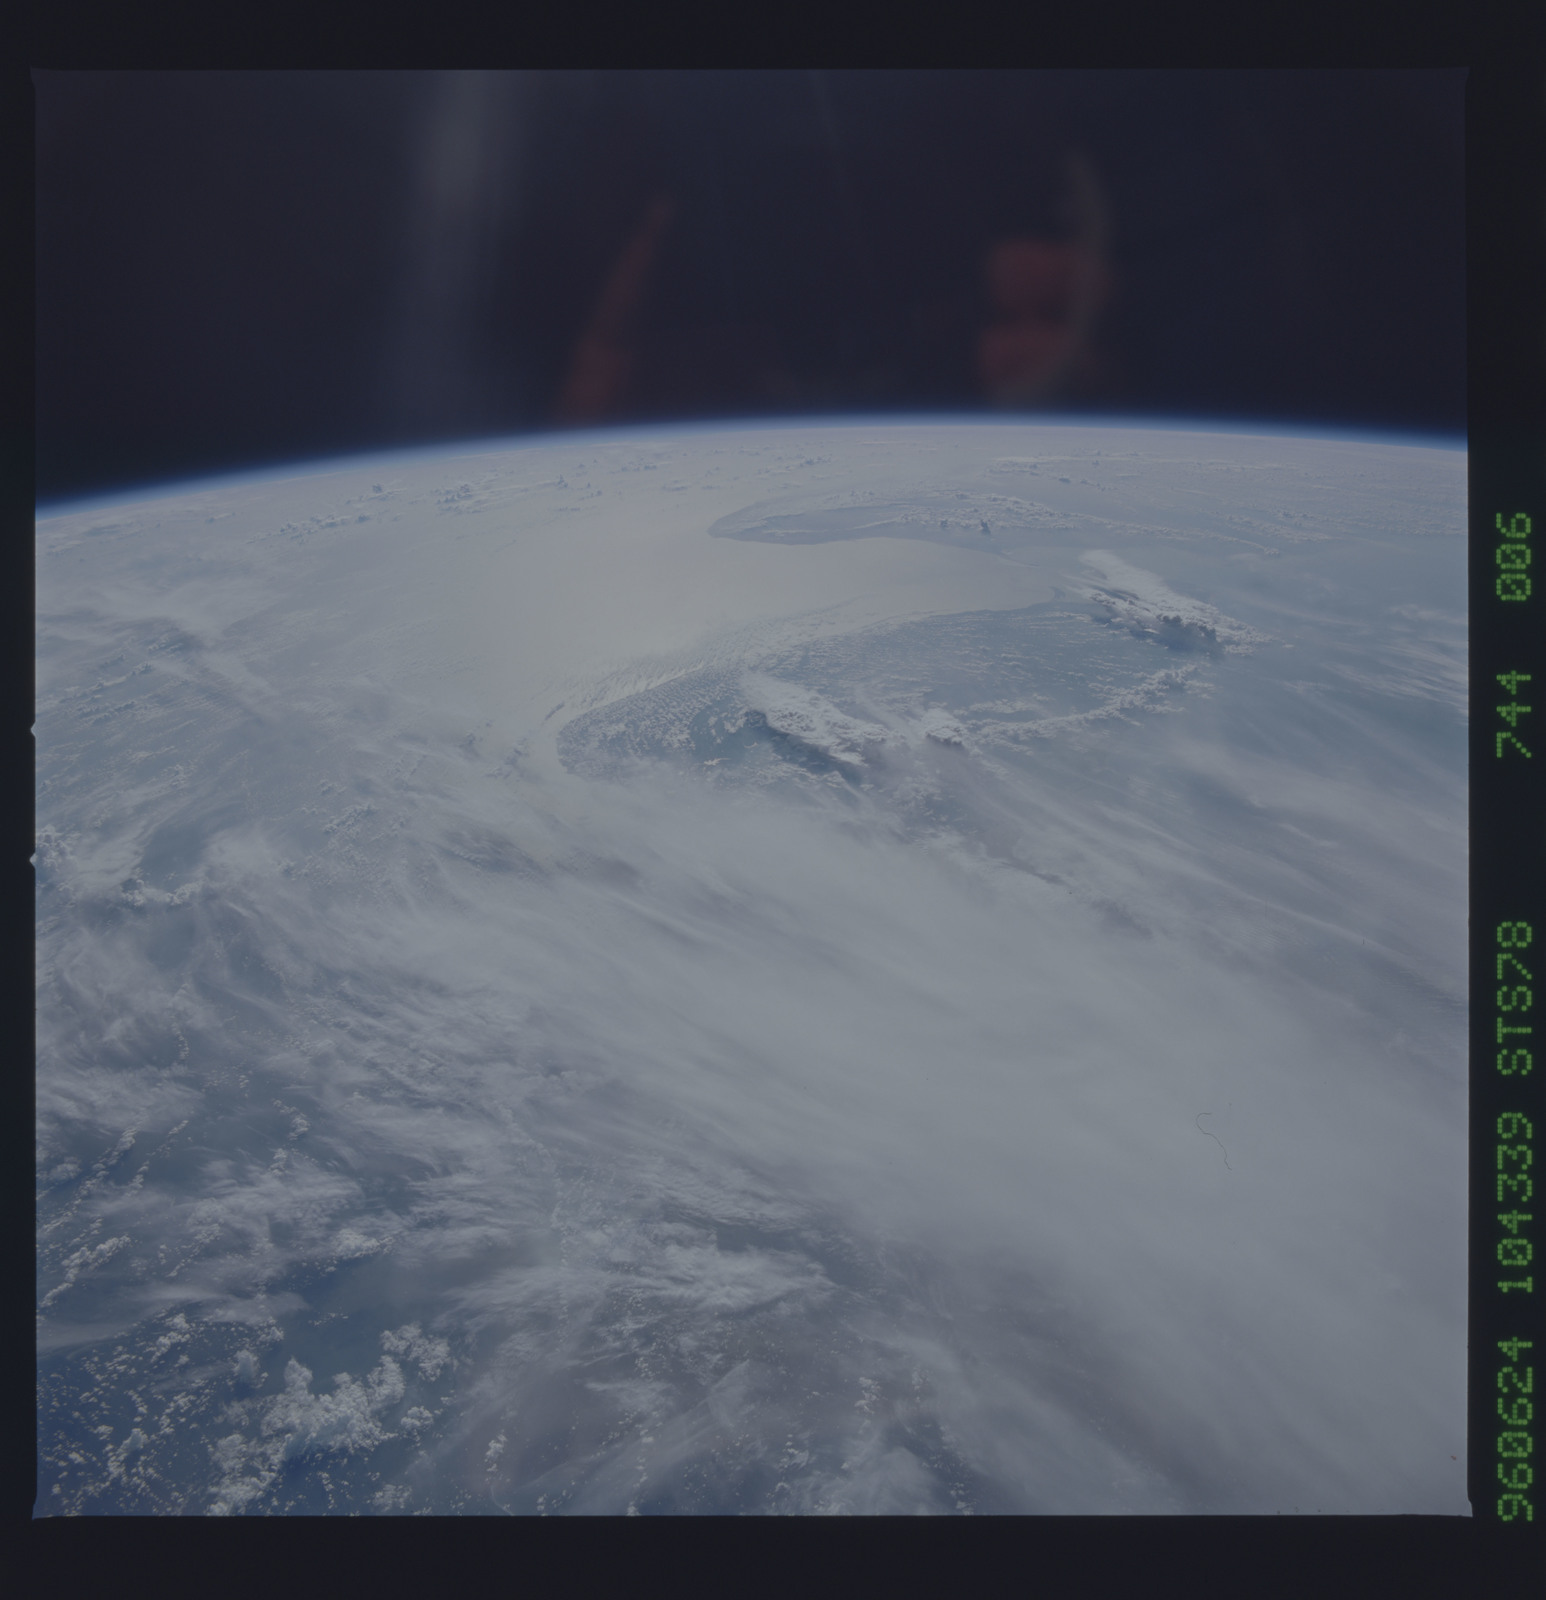 STS078-744-006 - STS-078 - Earth observations taken from Space Shuttle Columbia during STS-78 mission